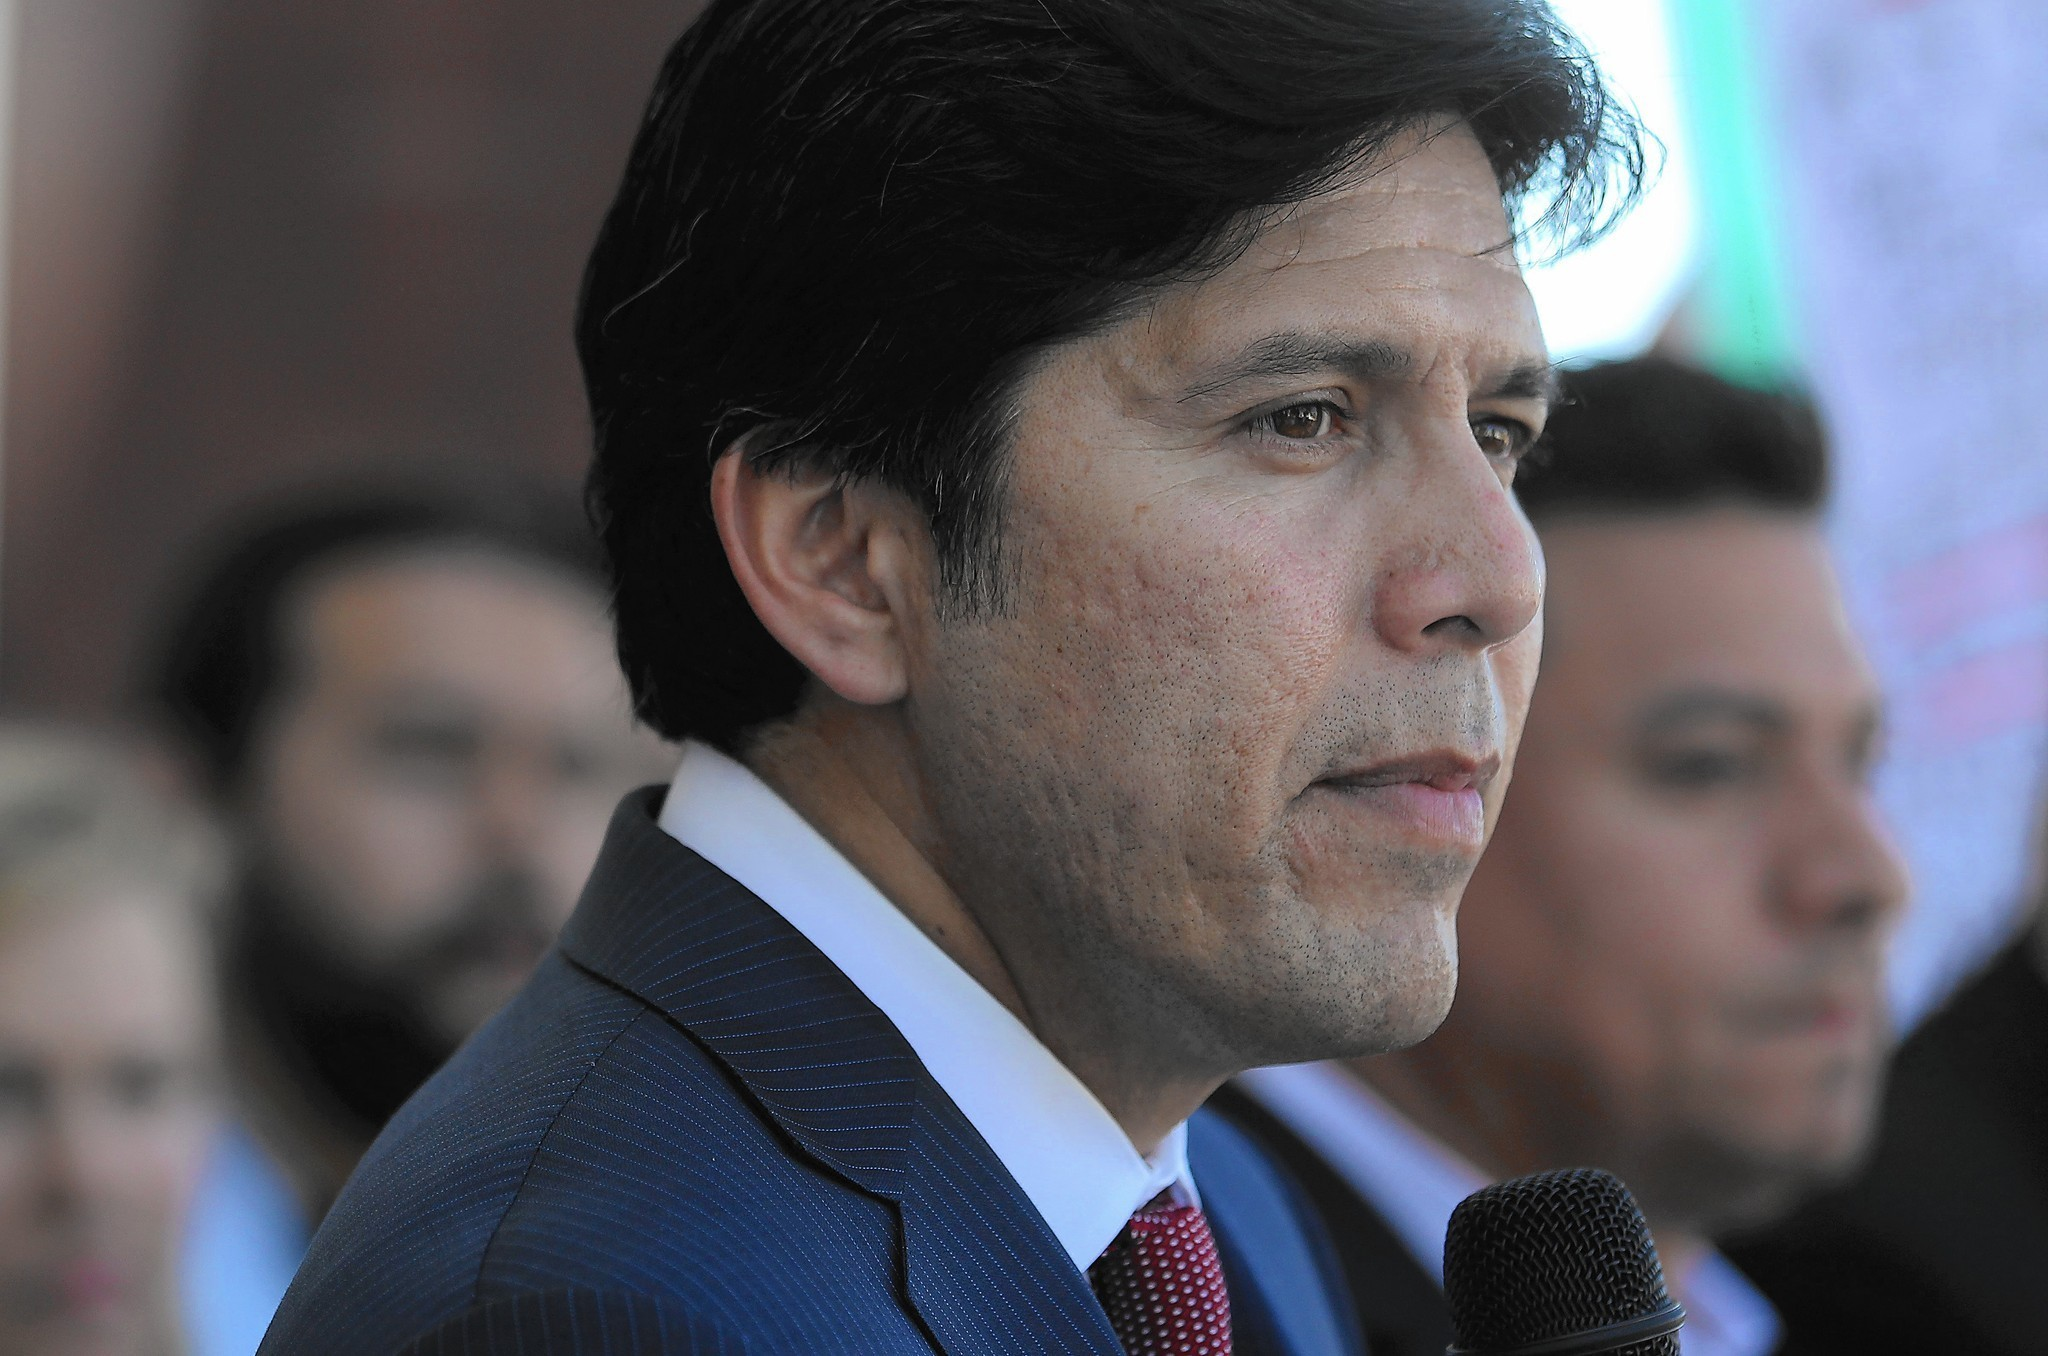 Kevin de León called about job for daughter at nonprofit ...